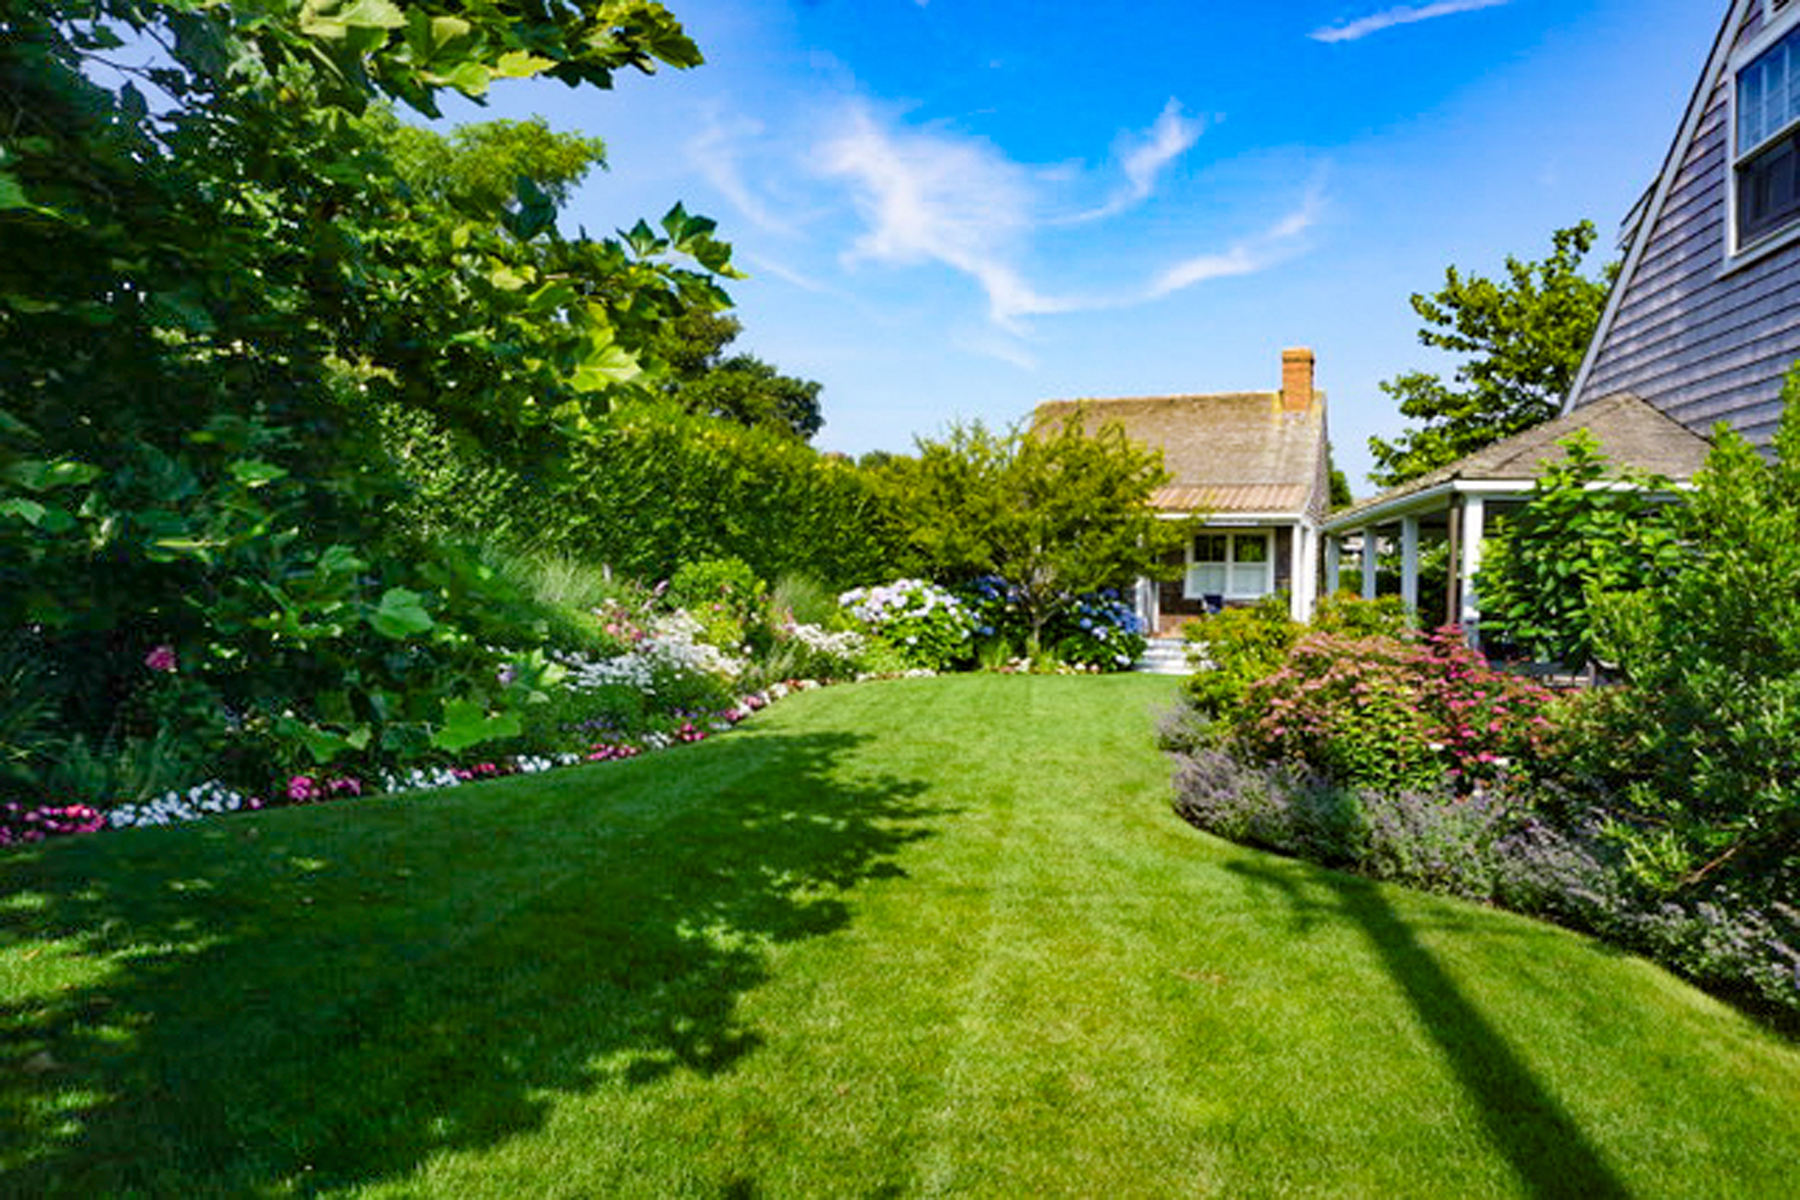 Single Family Home for Active at Quaint and Idyllic with Plenty of Expansion Possibilities 28 Morey Lane Siasconset, Massachusetts 02564 United States